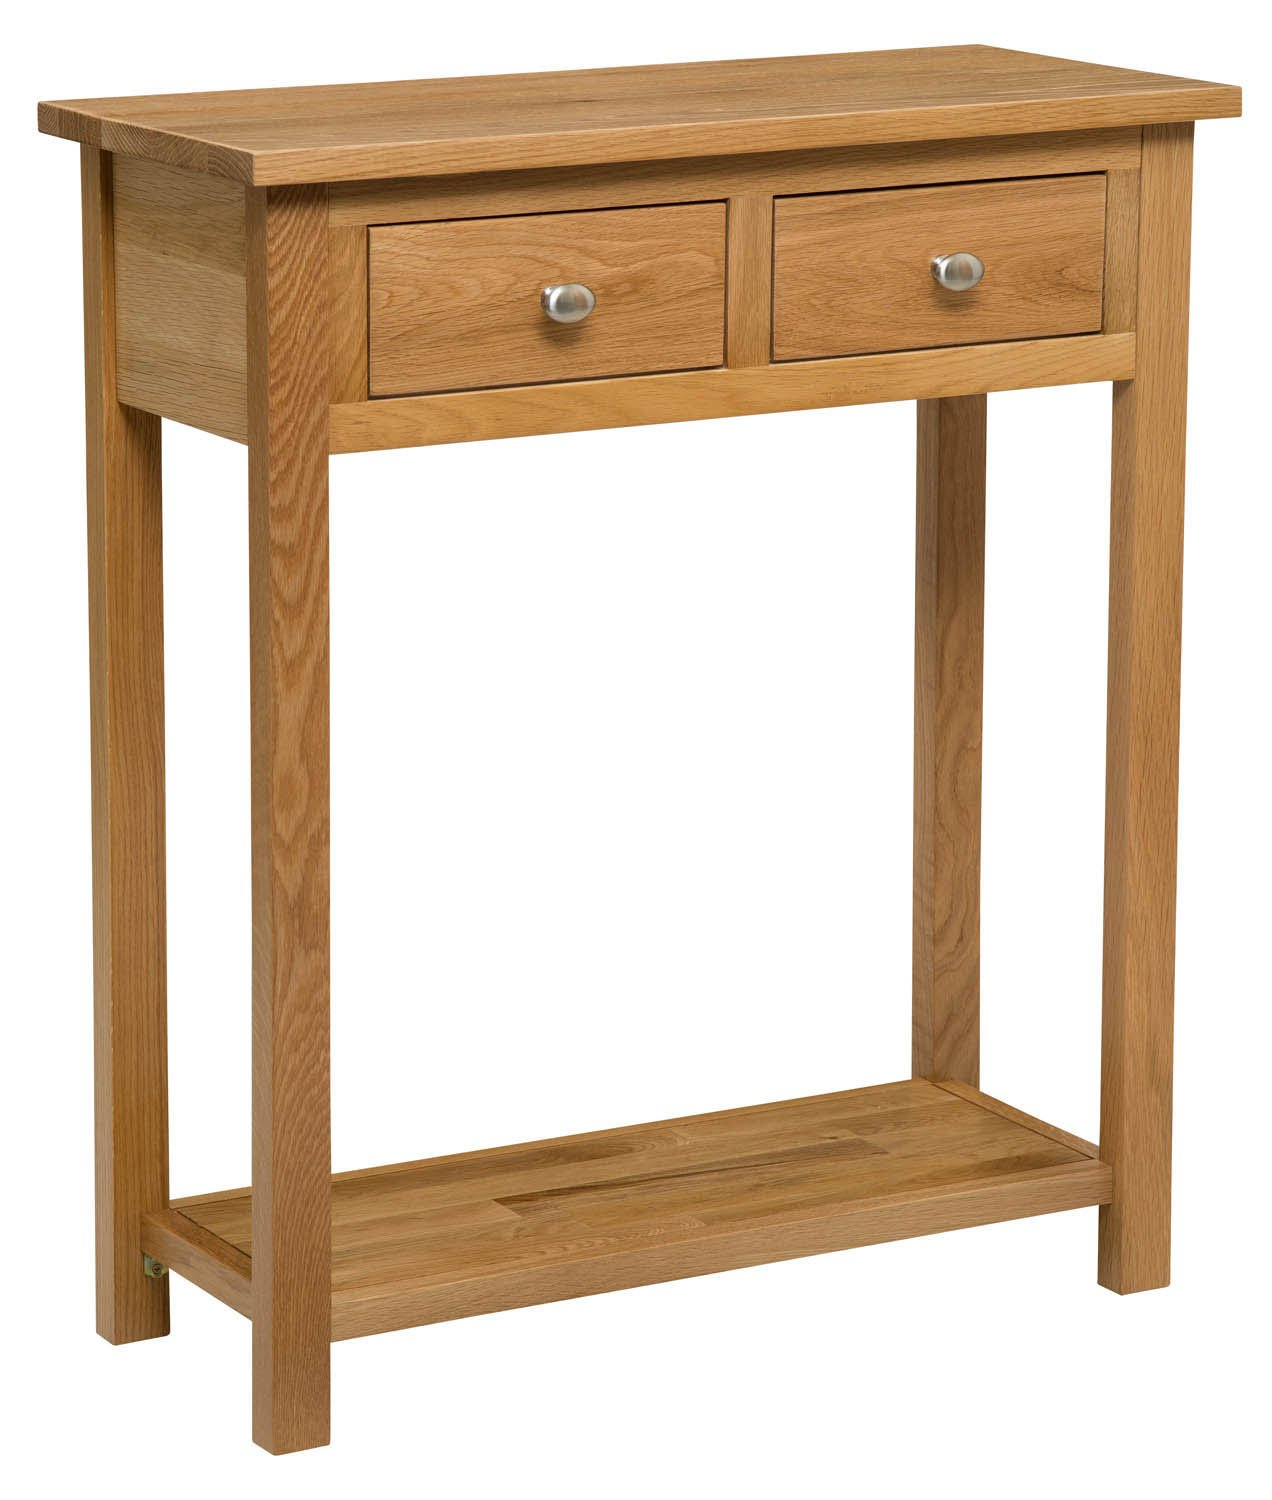 oak hall console table. Waverly Oak 2 Drawer Large Console Table In Light Finish | Solid Wooden Hall Table/Side Table/End Table/Telephone With Drawer: Amazon.co.uk: C